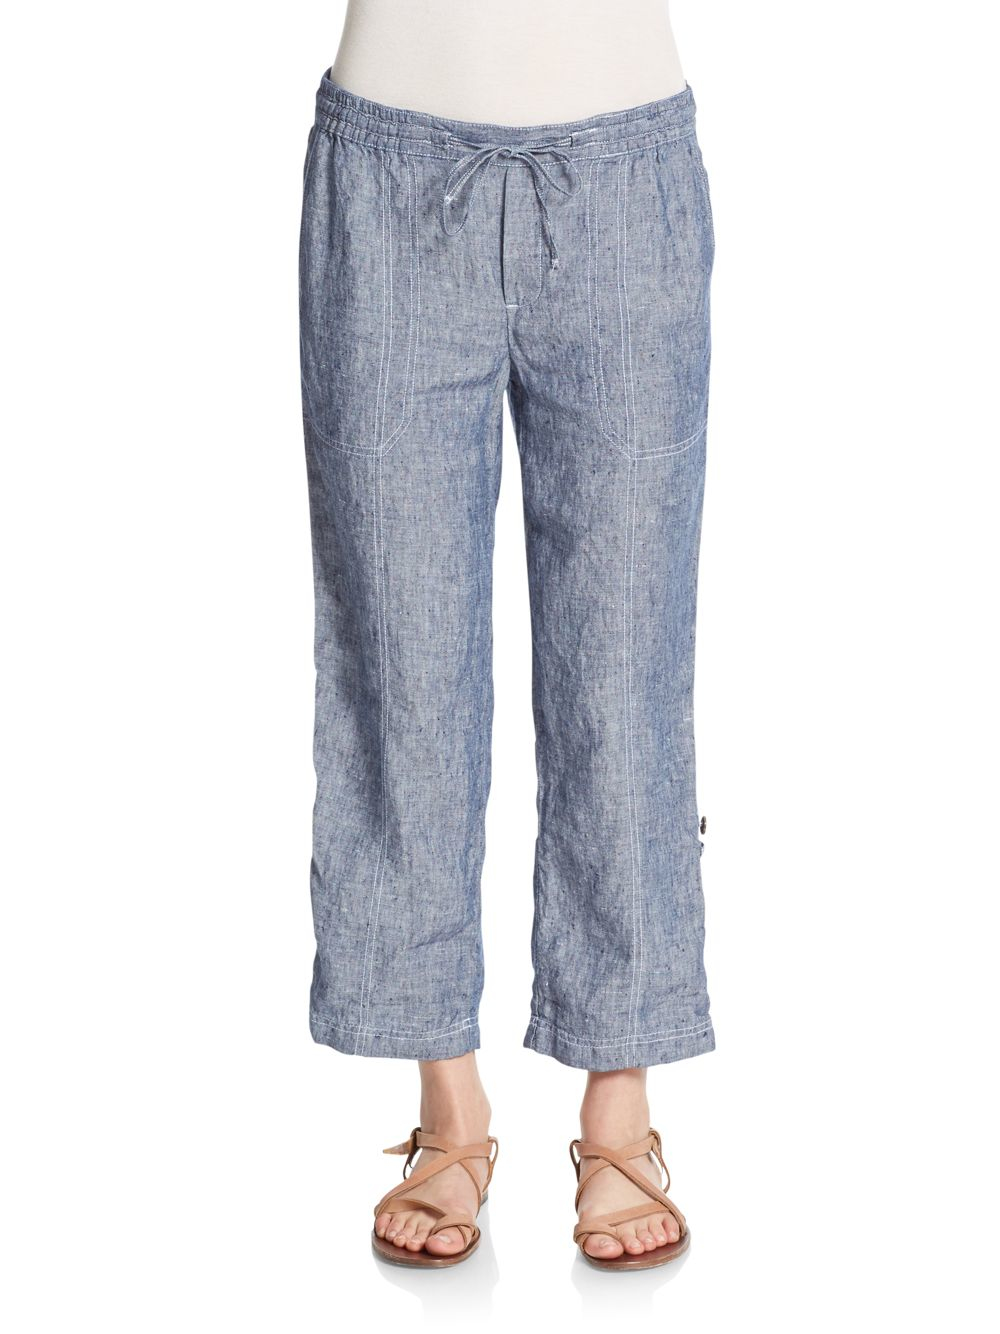 Chambray linen pants pant so for Chambray jeans